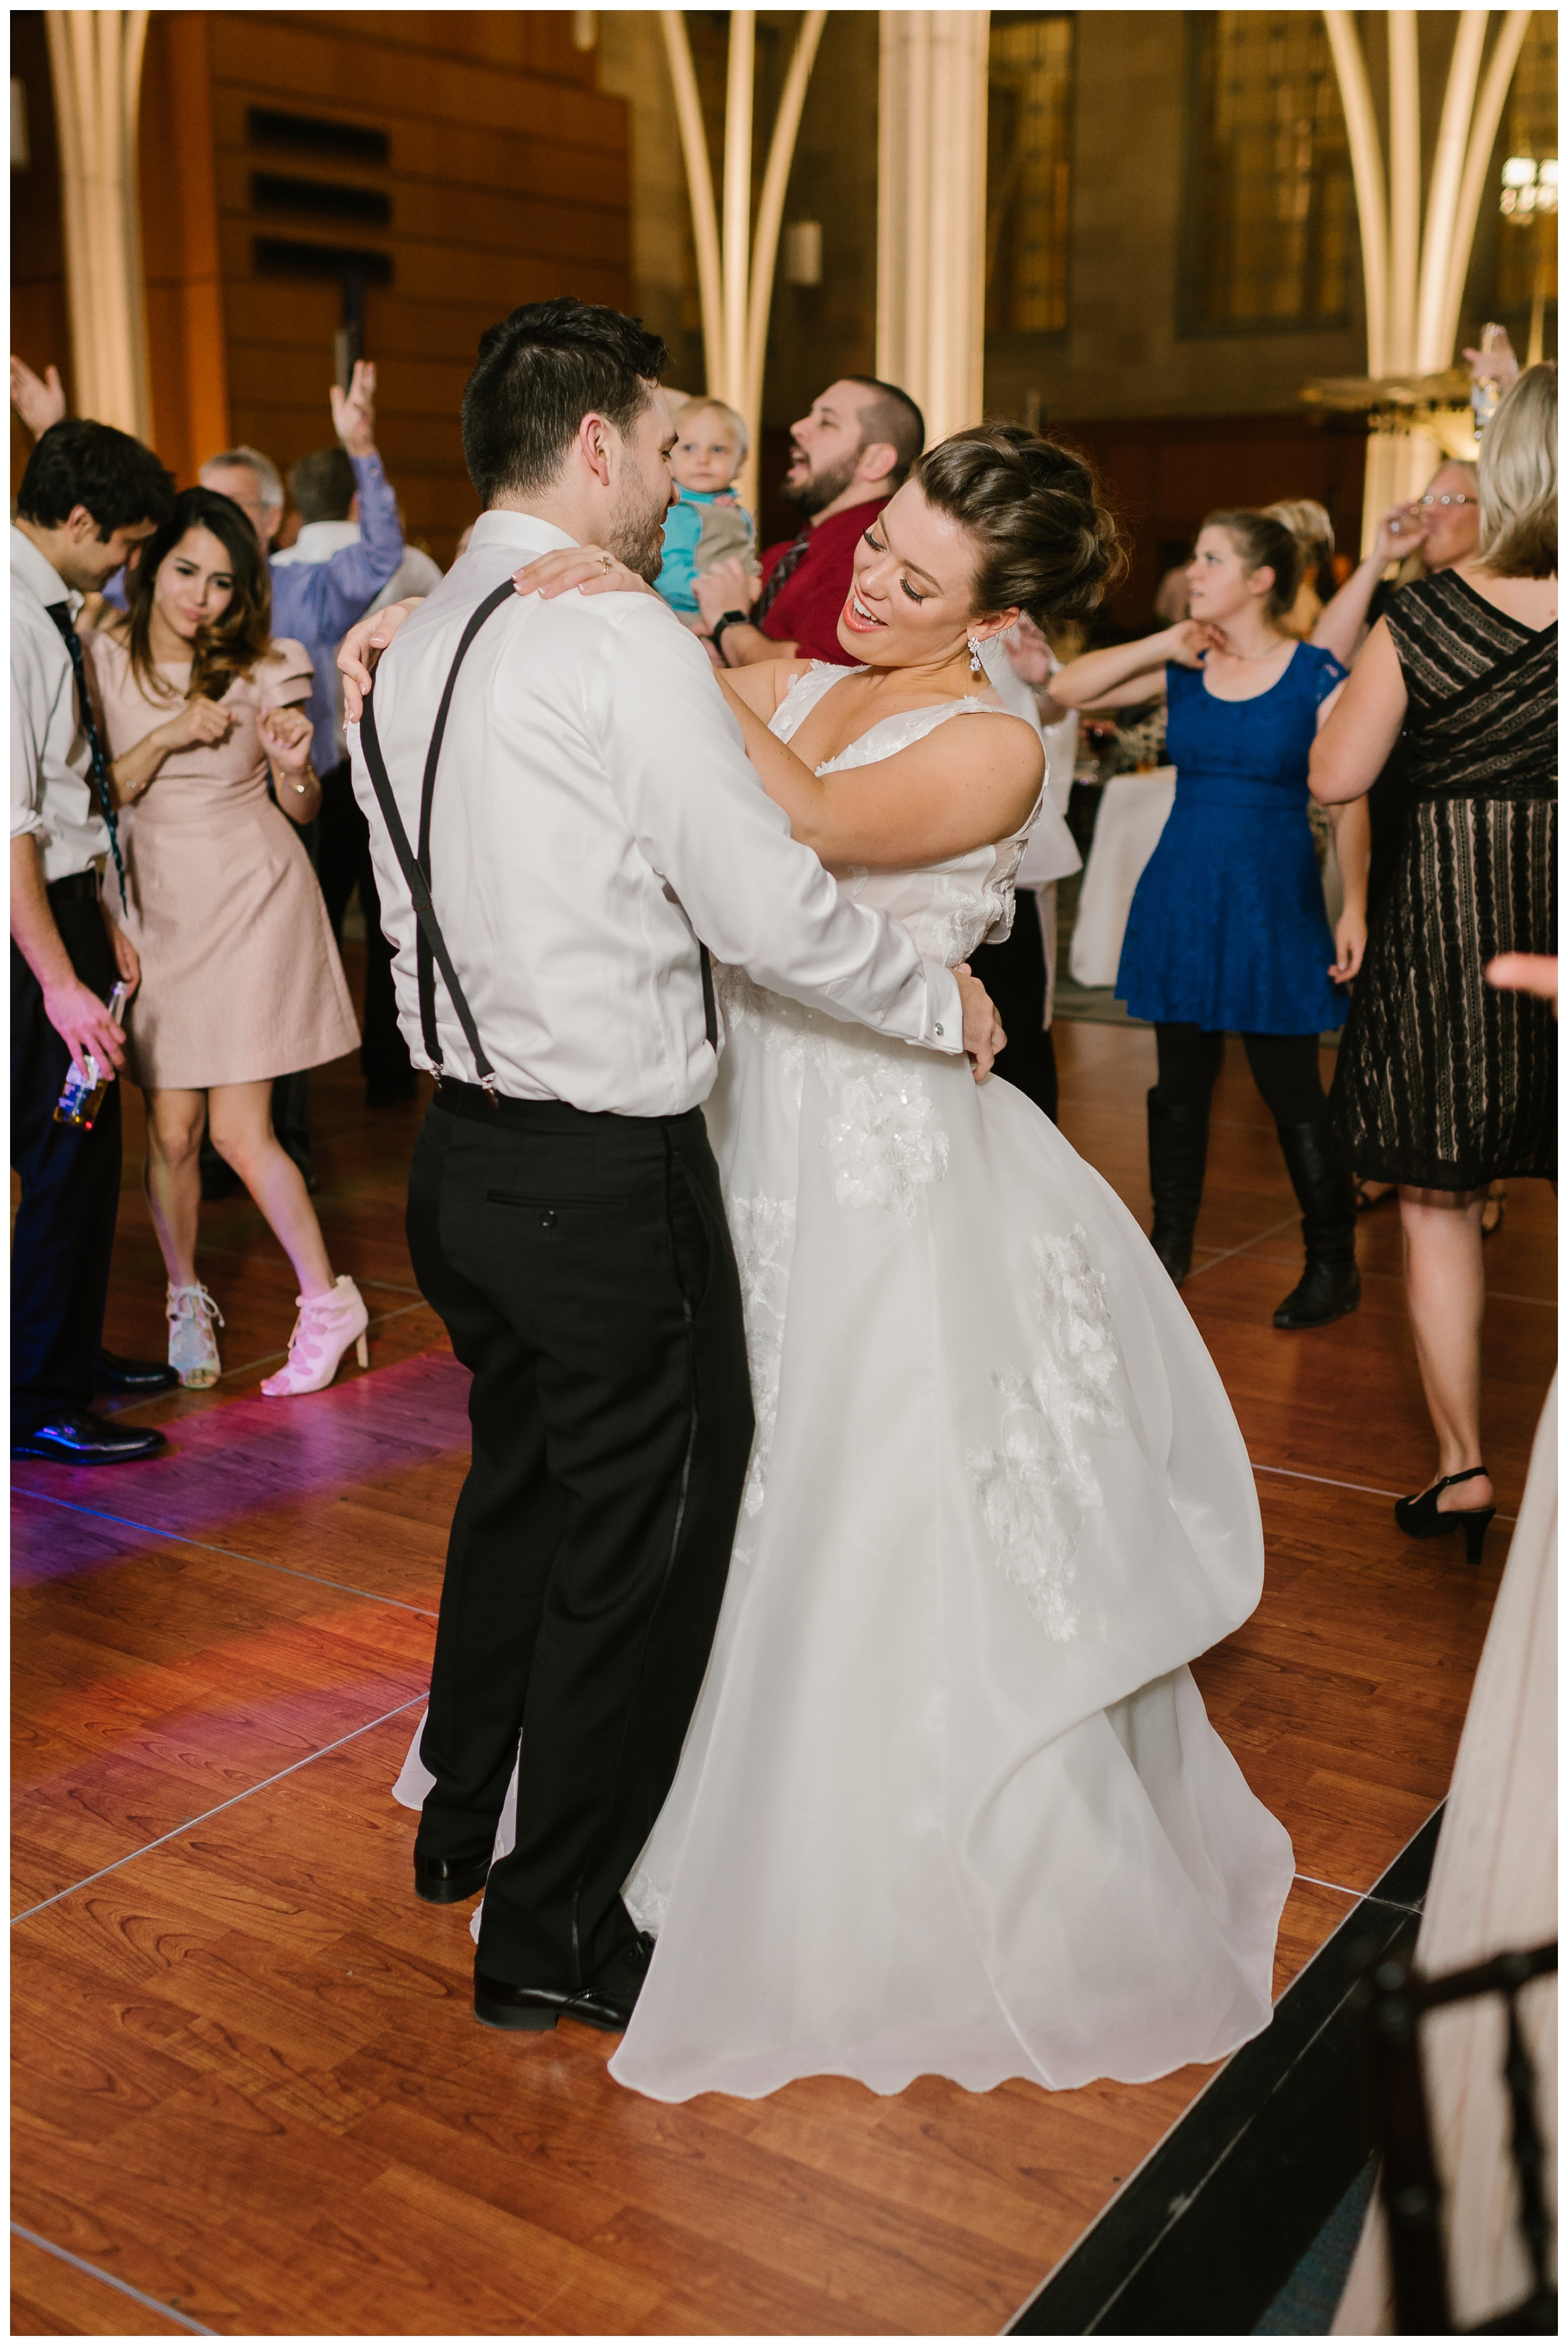 Rebecca_Shehorn_Photography_Indianapolis_Wedding_Photographer_7802.jpg